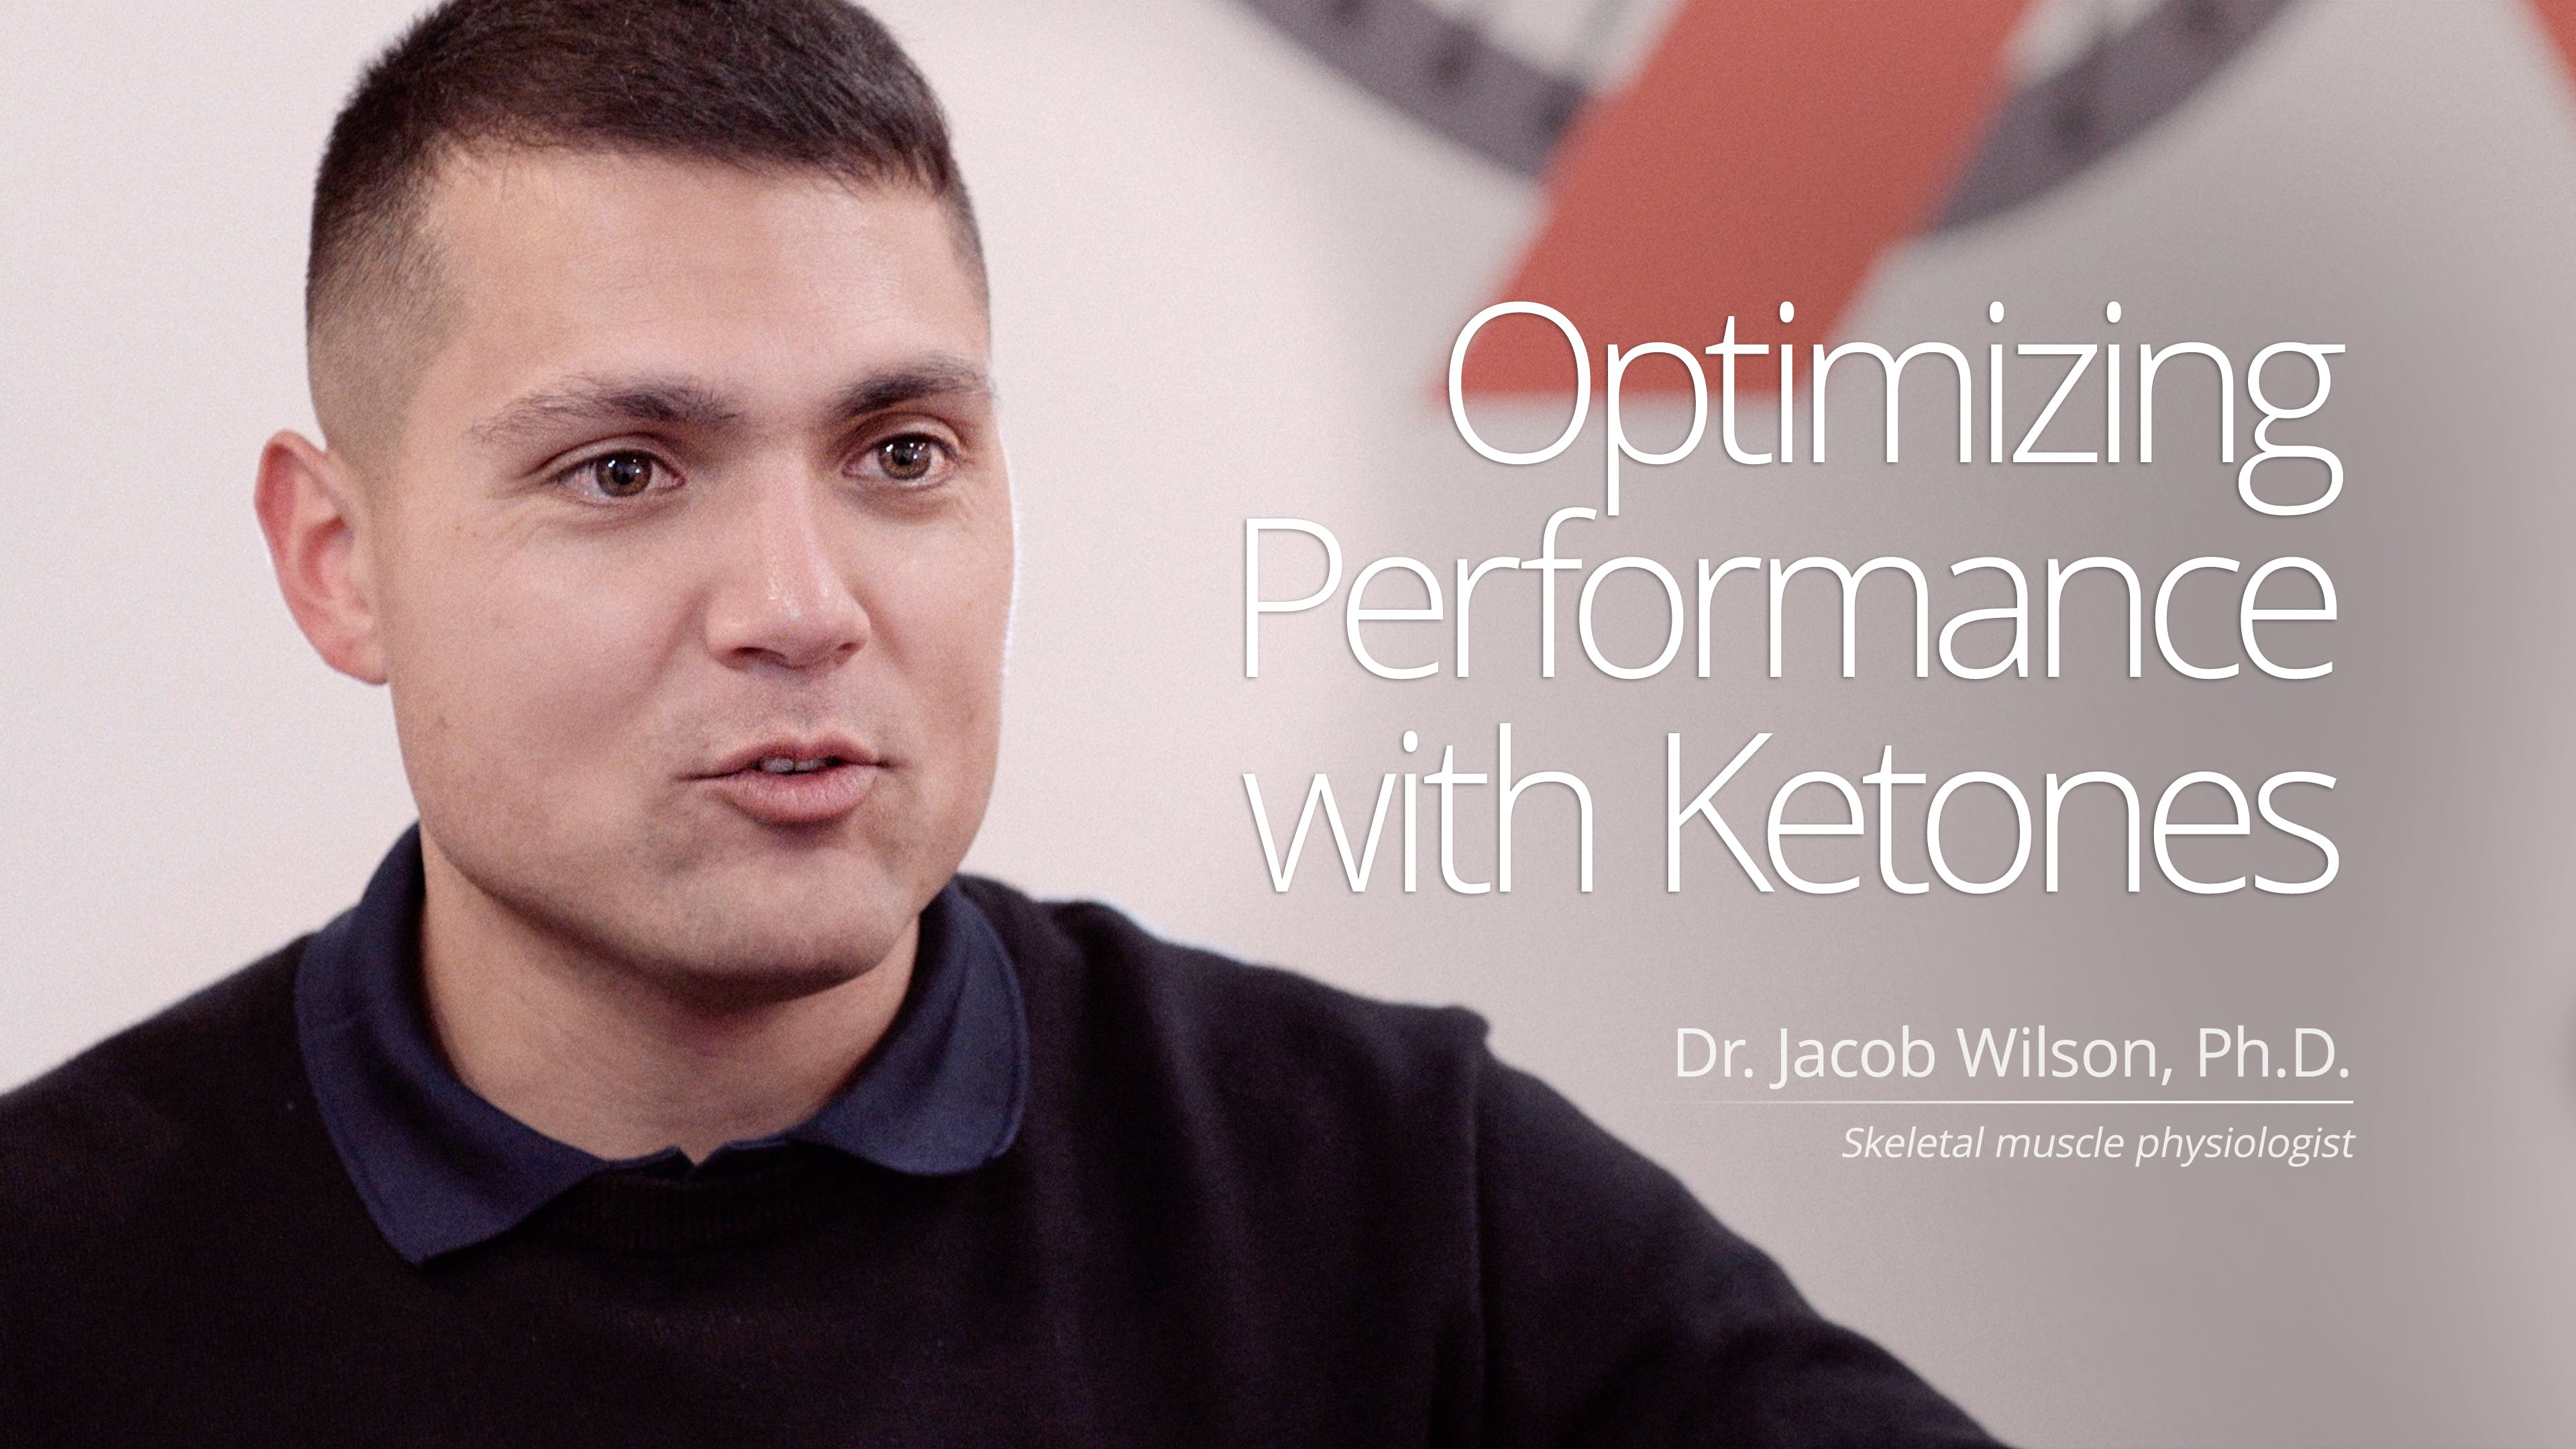 How to optimize performance with a keto diet